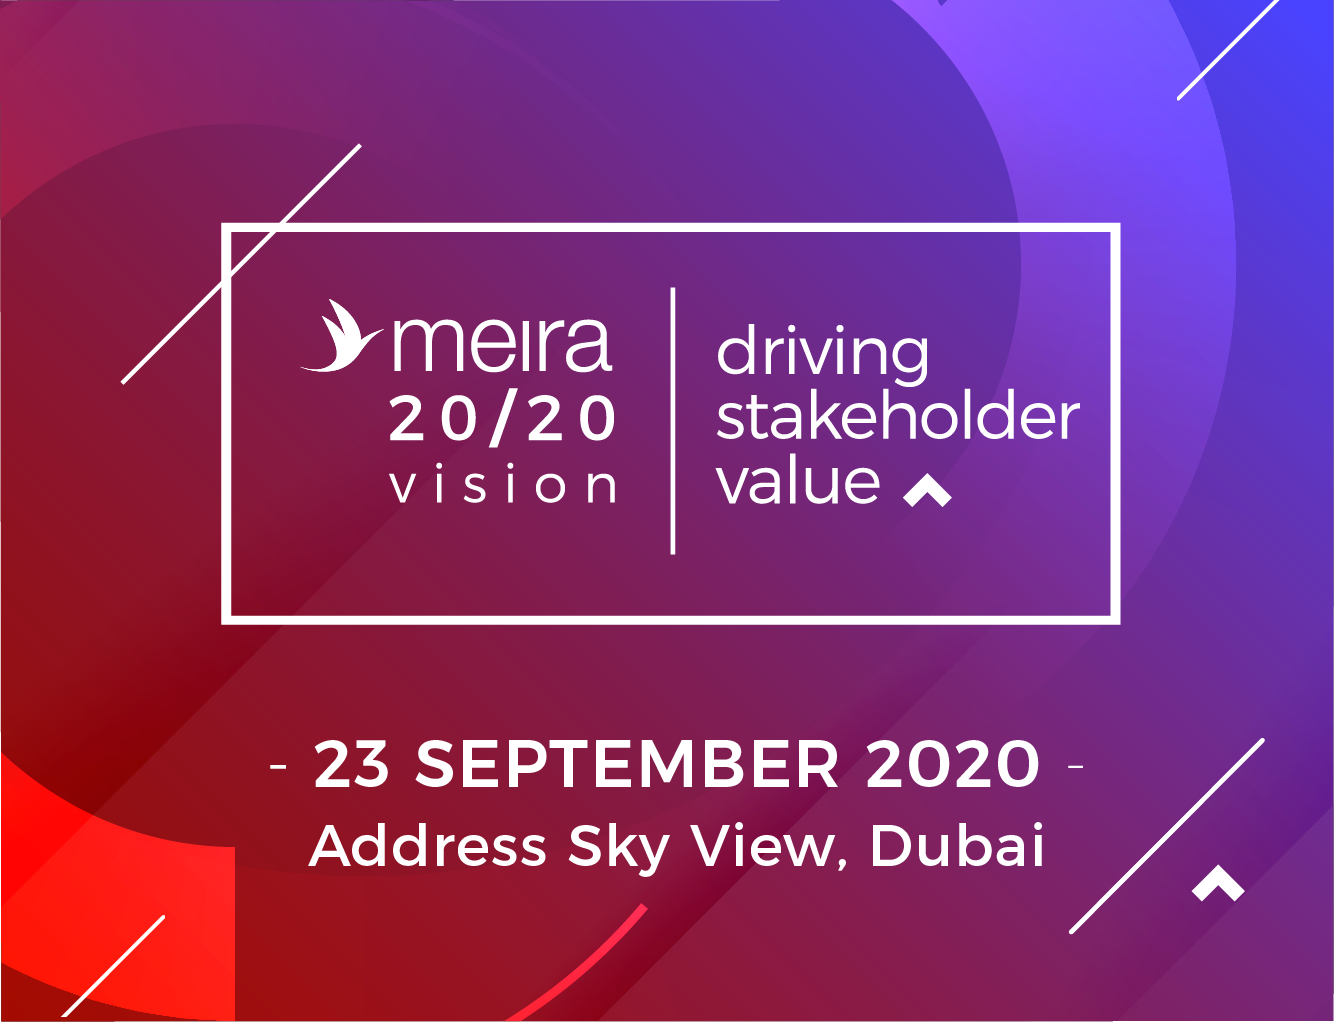 MEIRA 2020 Annual Conference